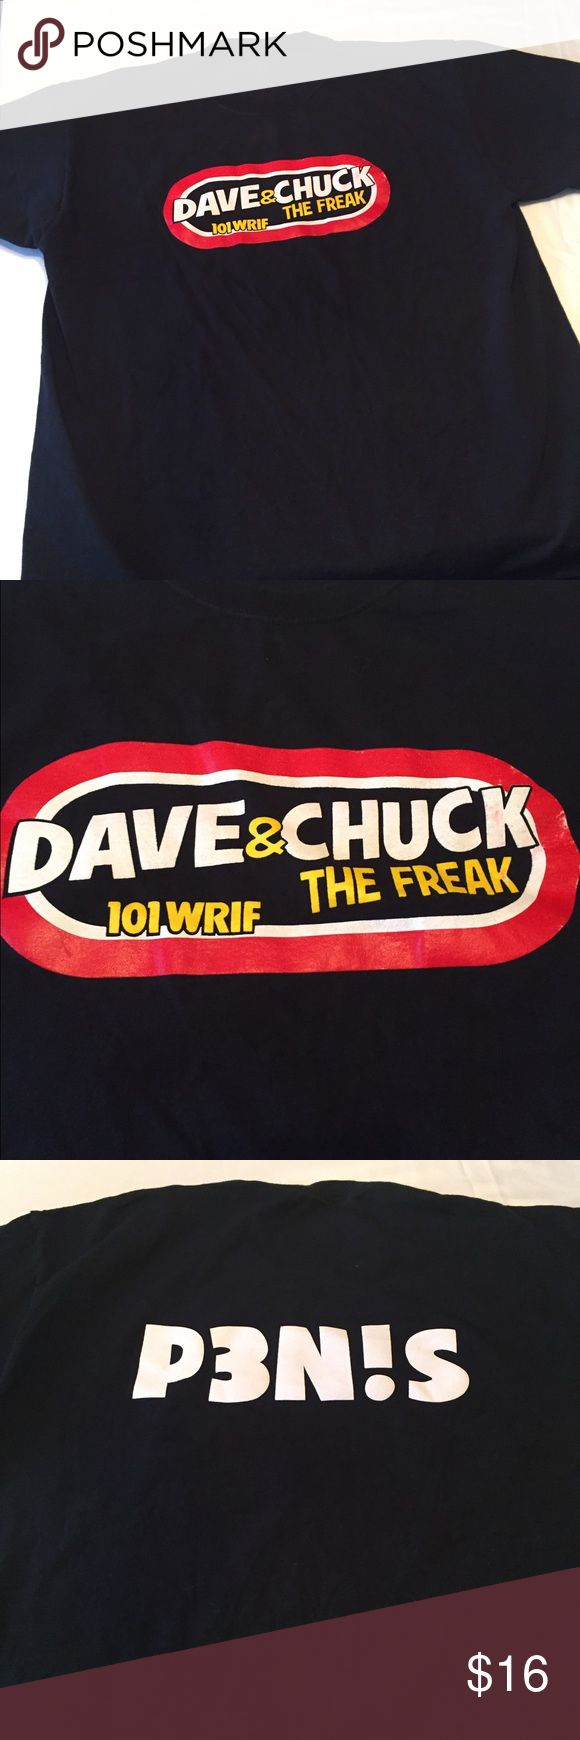 """Dave & Chuck the freak Detroit 101 WRIF radio tee Dark black tee from local Detroit radio station of Dave & Chuck the freak Detroit 101 WRIF. Emblem have some discoloration to one side but is fully intact shirt with only borrow your times on the back it says P3N!S. which is what they say all the time. No size measures, 44x27"""" Shirts Tees - Short Sleeve"""